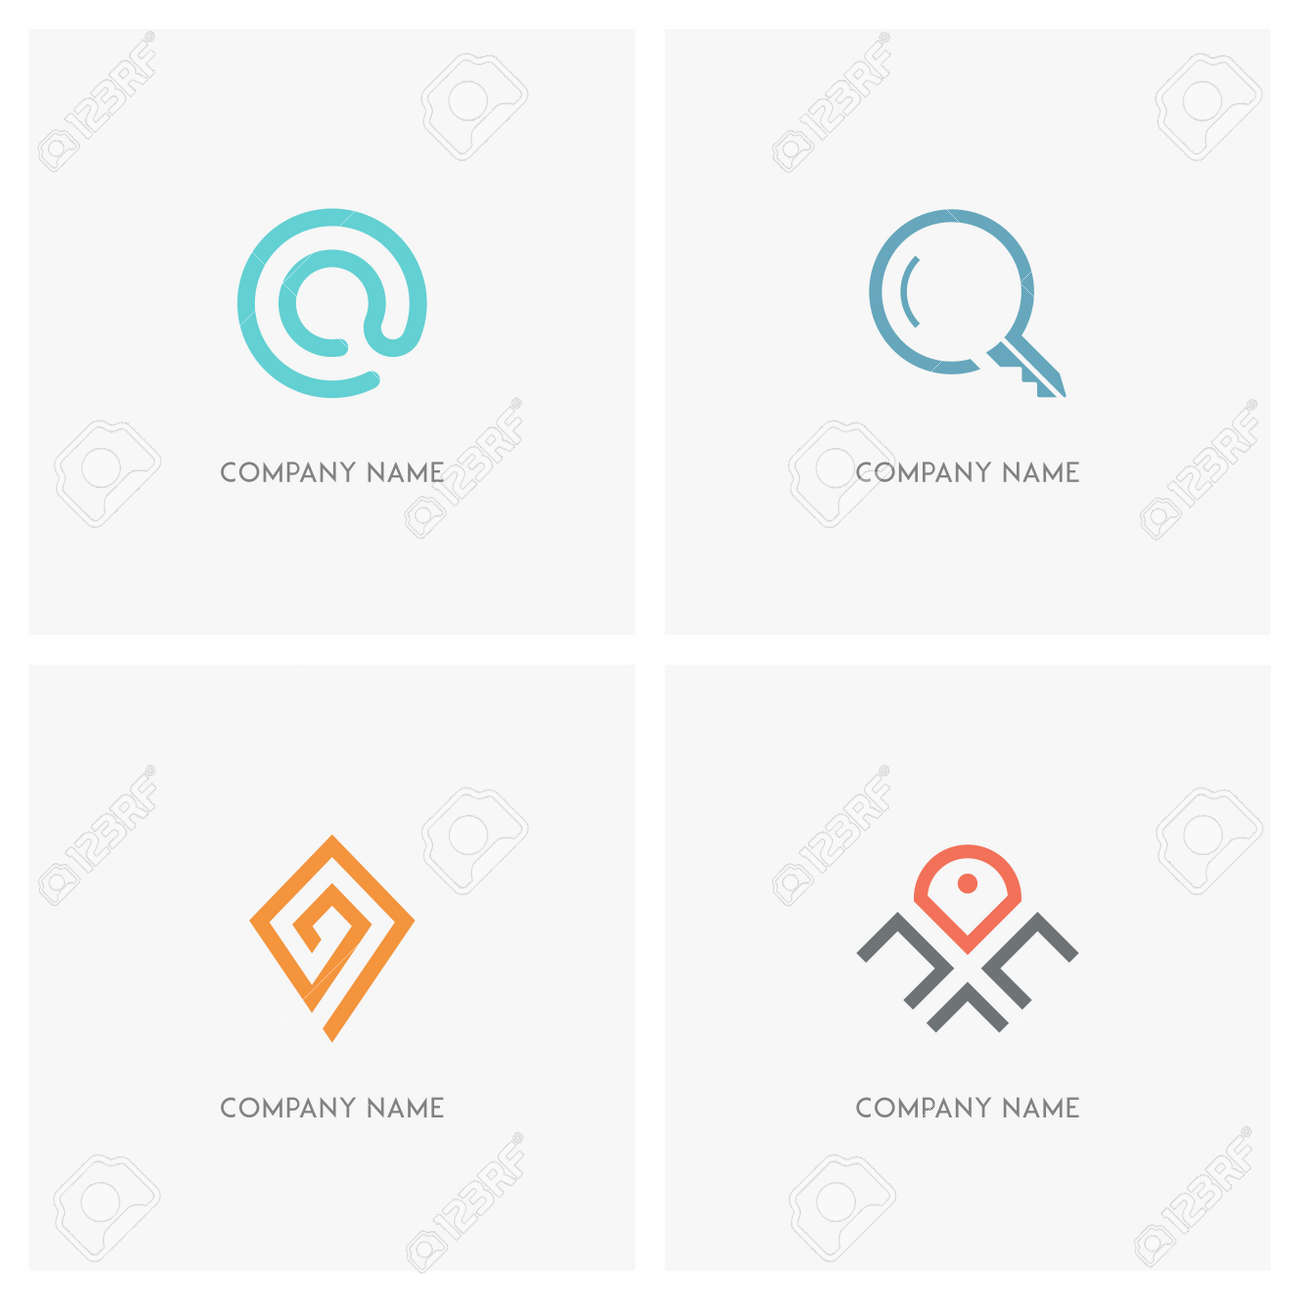 Address, email and search vector logo  Mail at sign, loupe, key